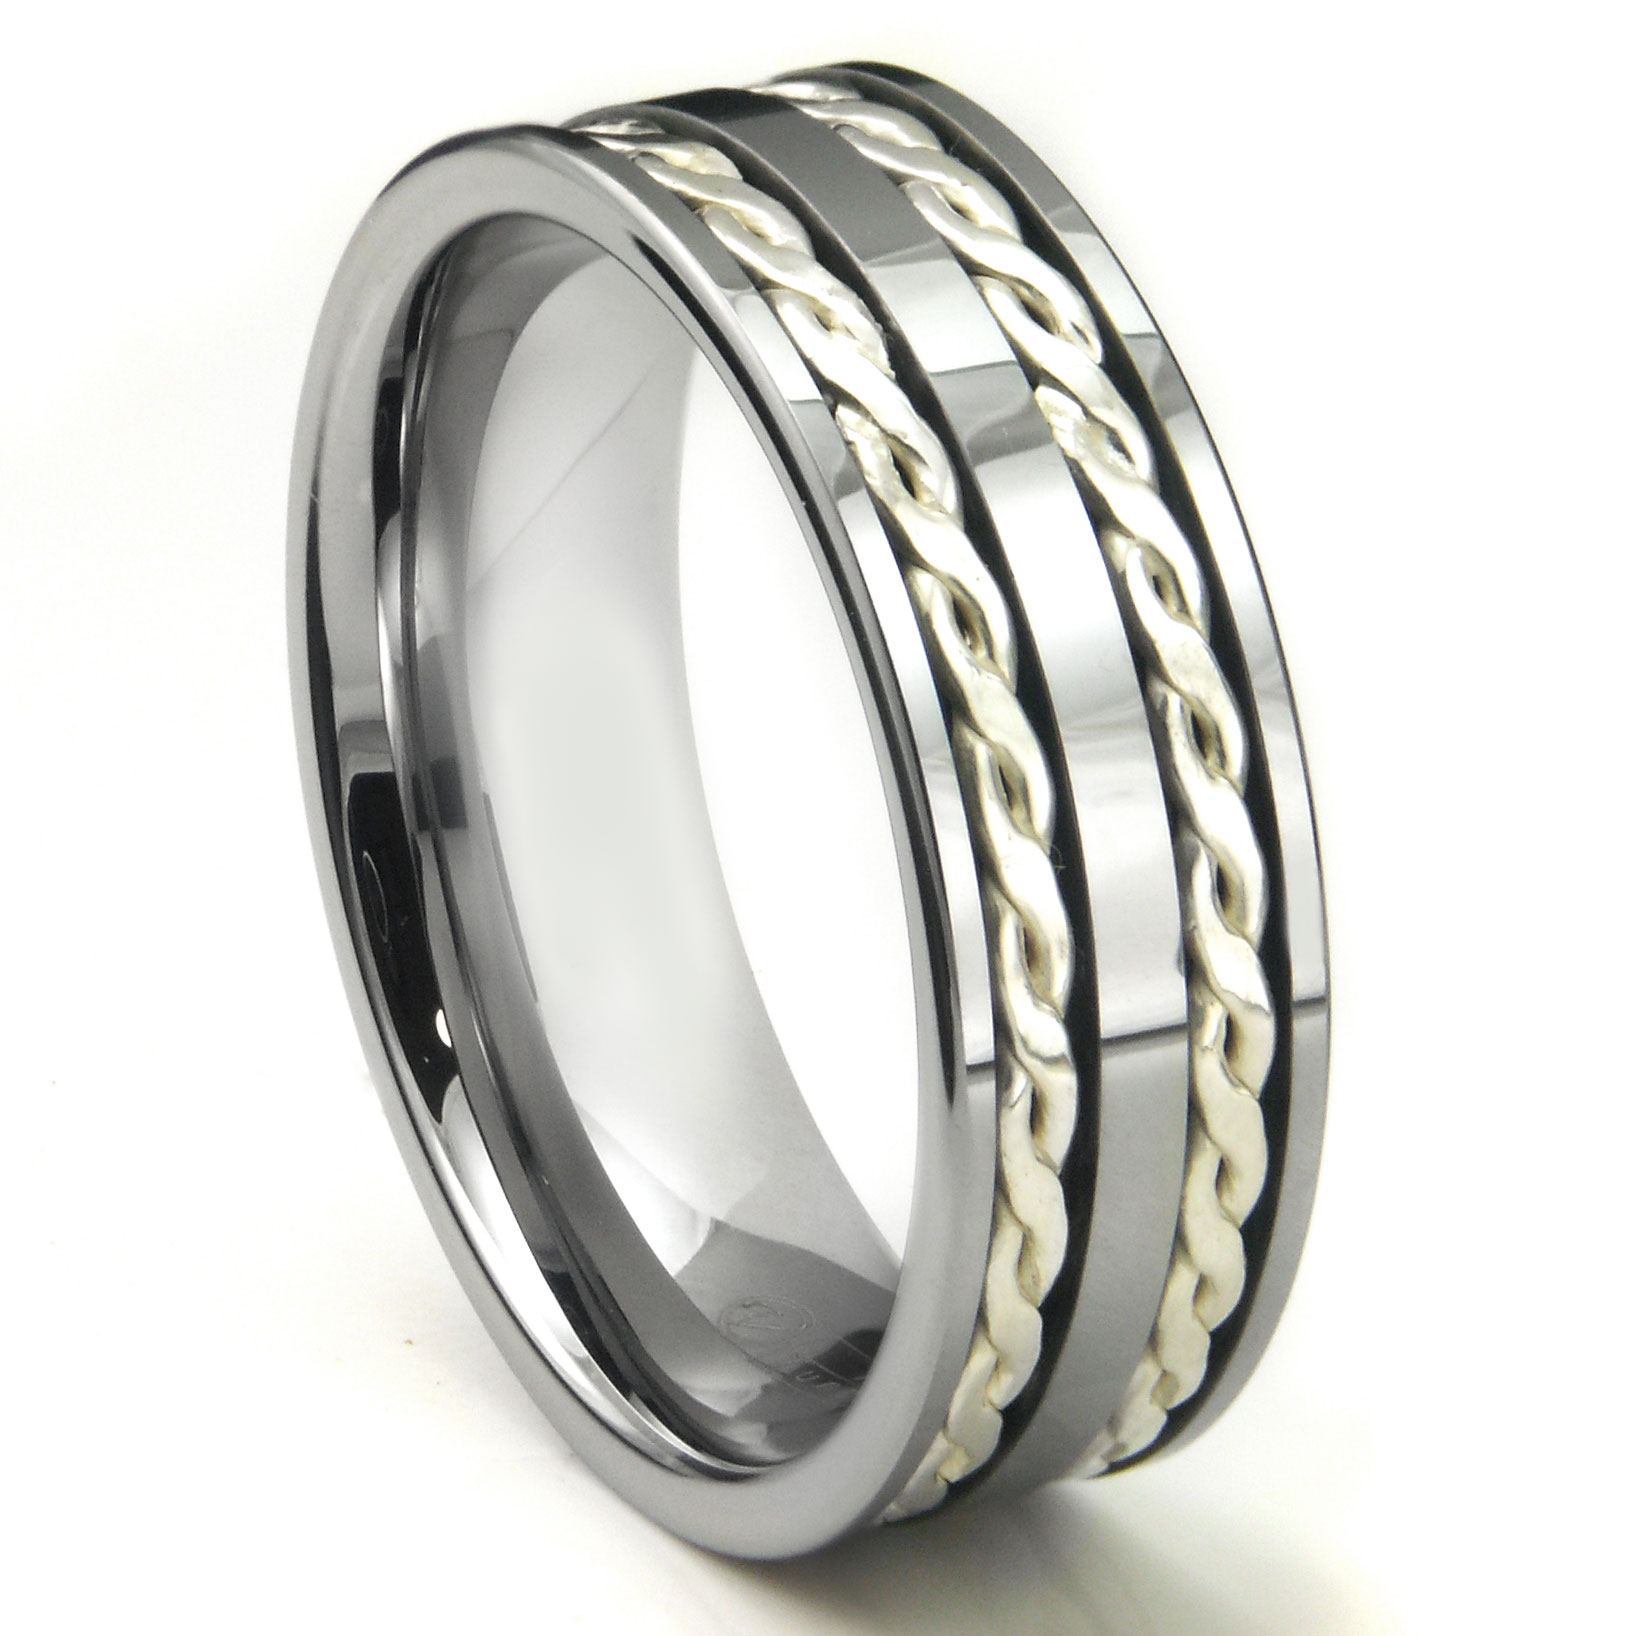 tungsten carbide silver rope wedding band ring. Black Bedroom Furniture Sets. Home Design Ideas